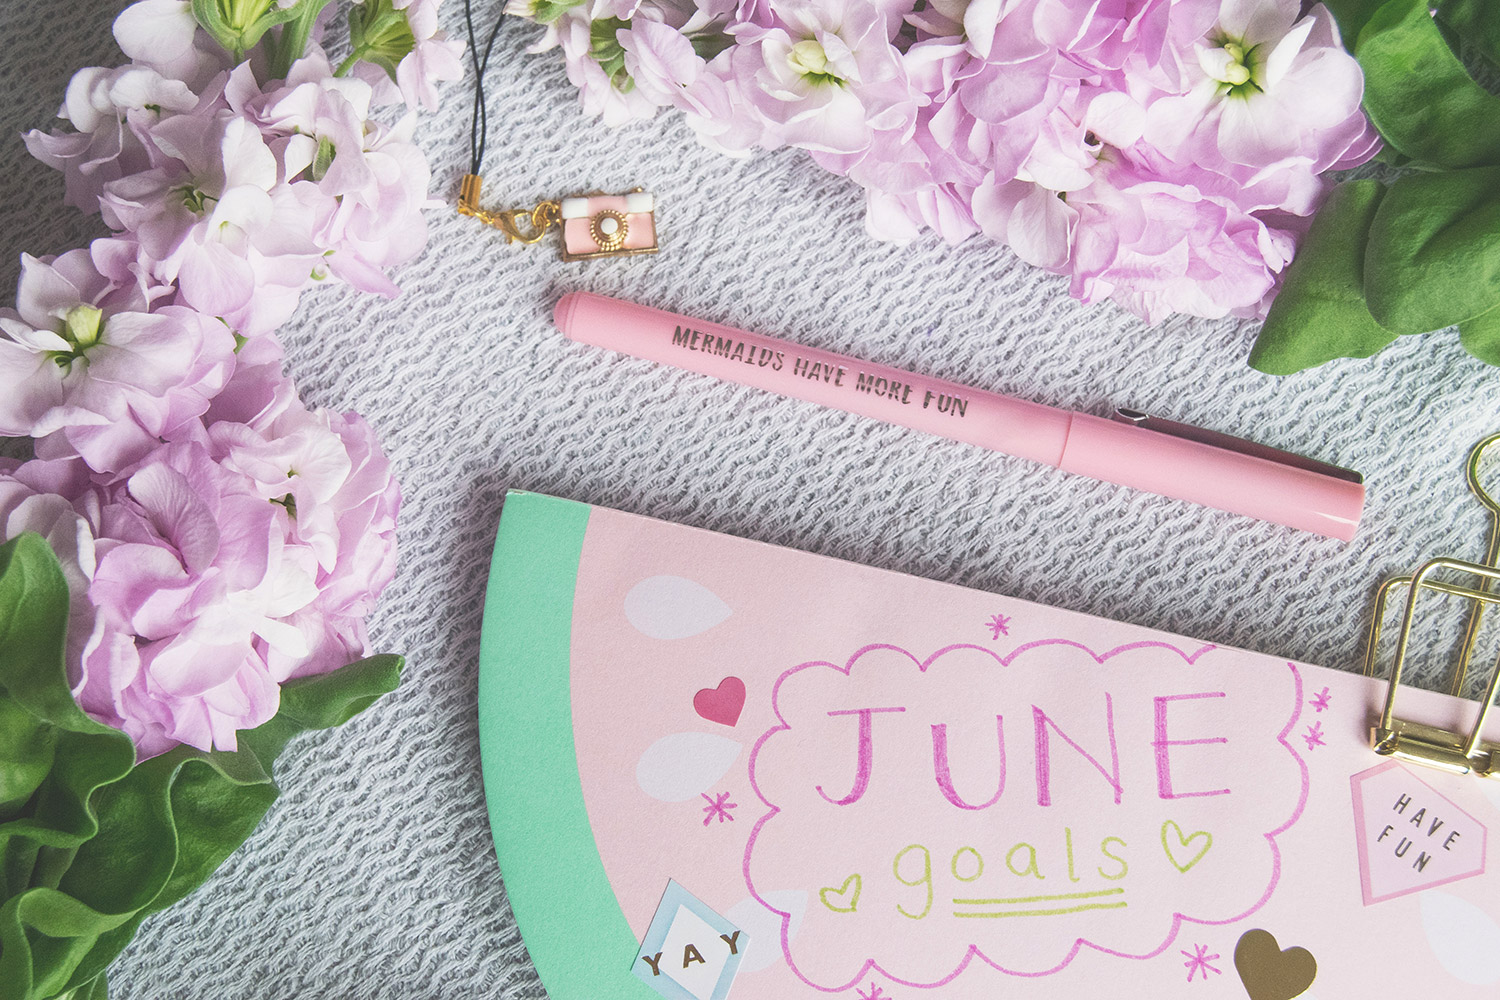 June goals - Watermelon notepad, doodles, mermaid pens and purple stocks flatlay with Homesense taken on a NikonD3300